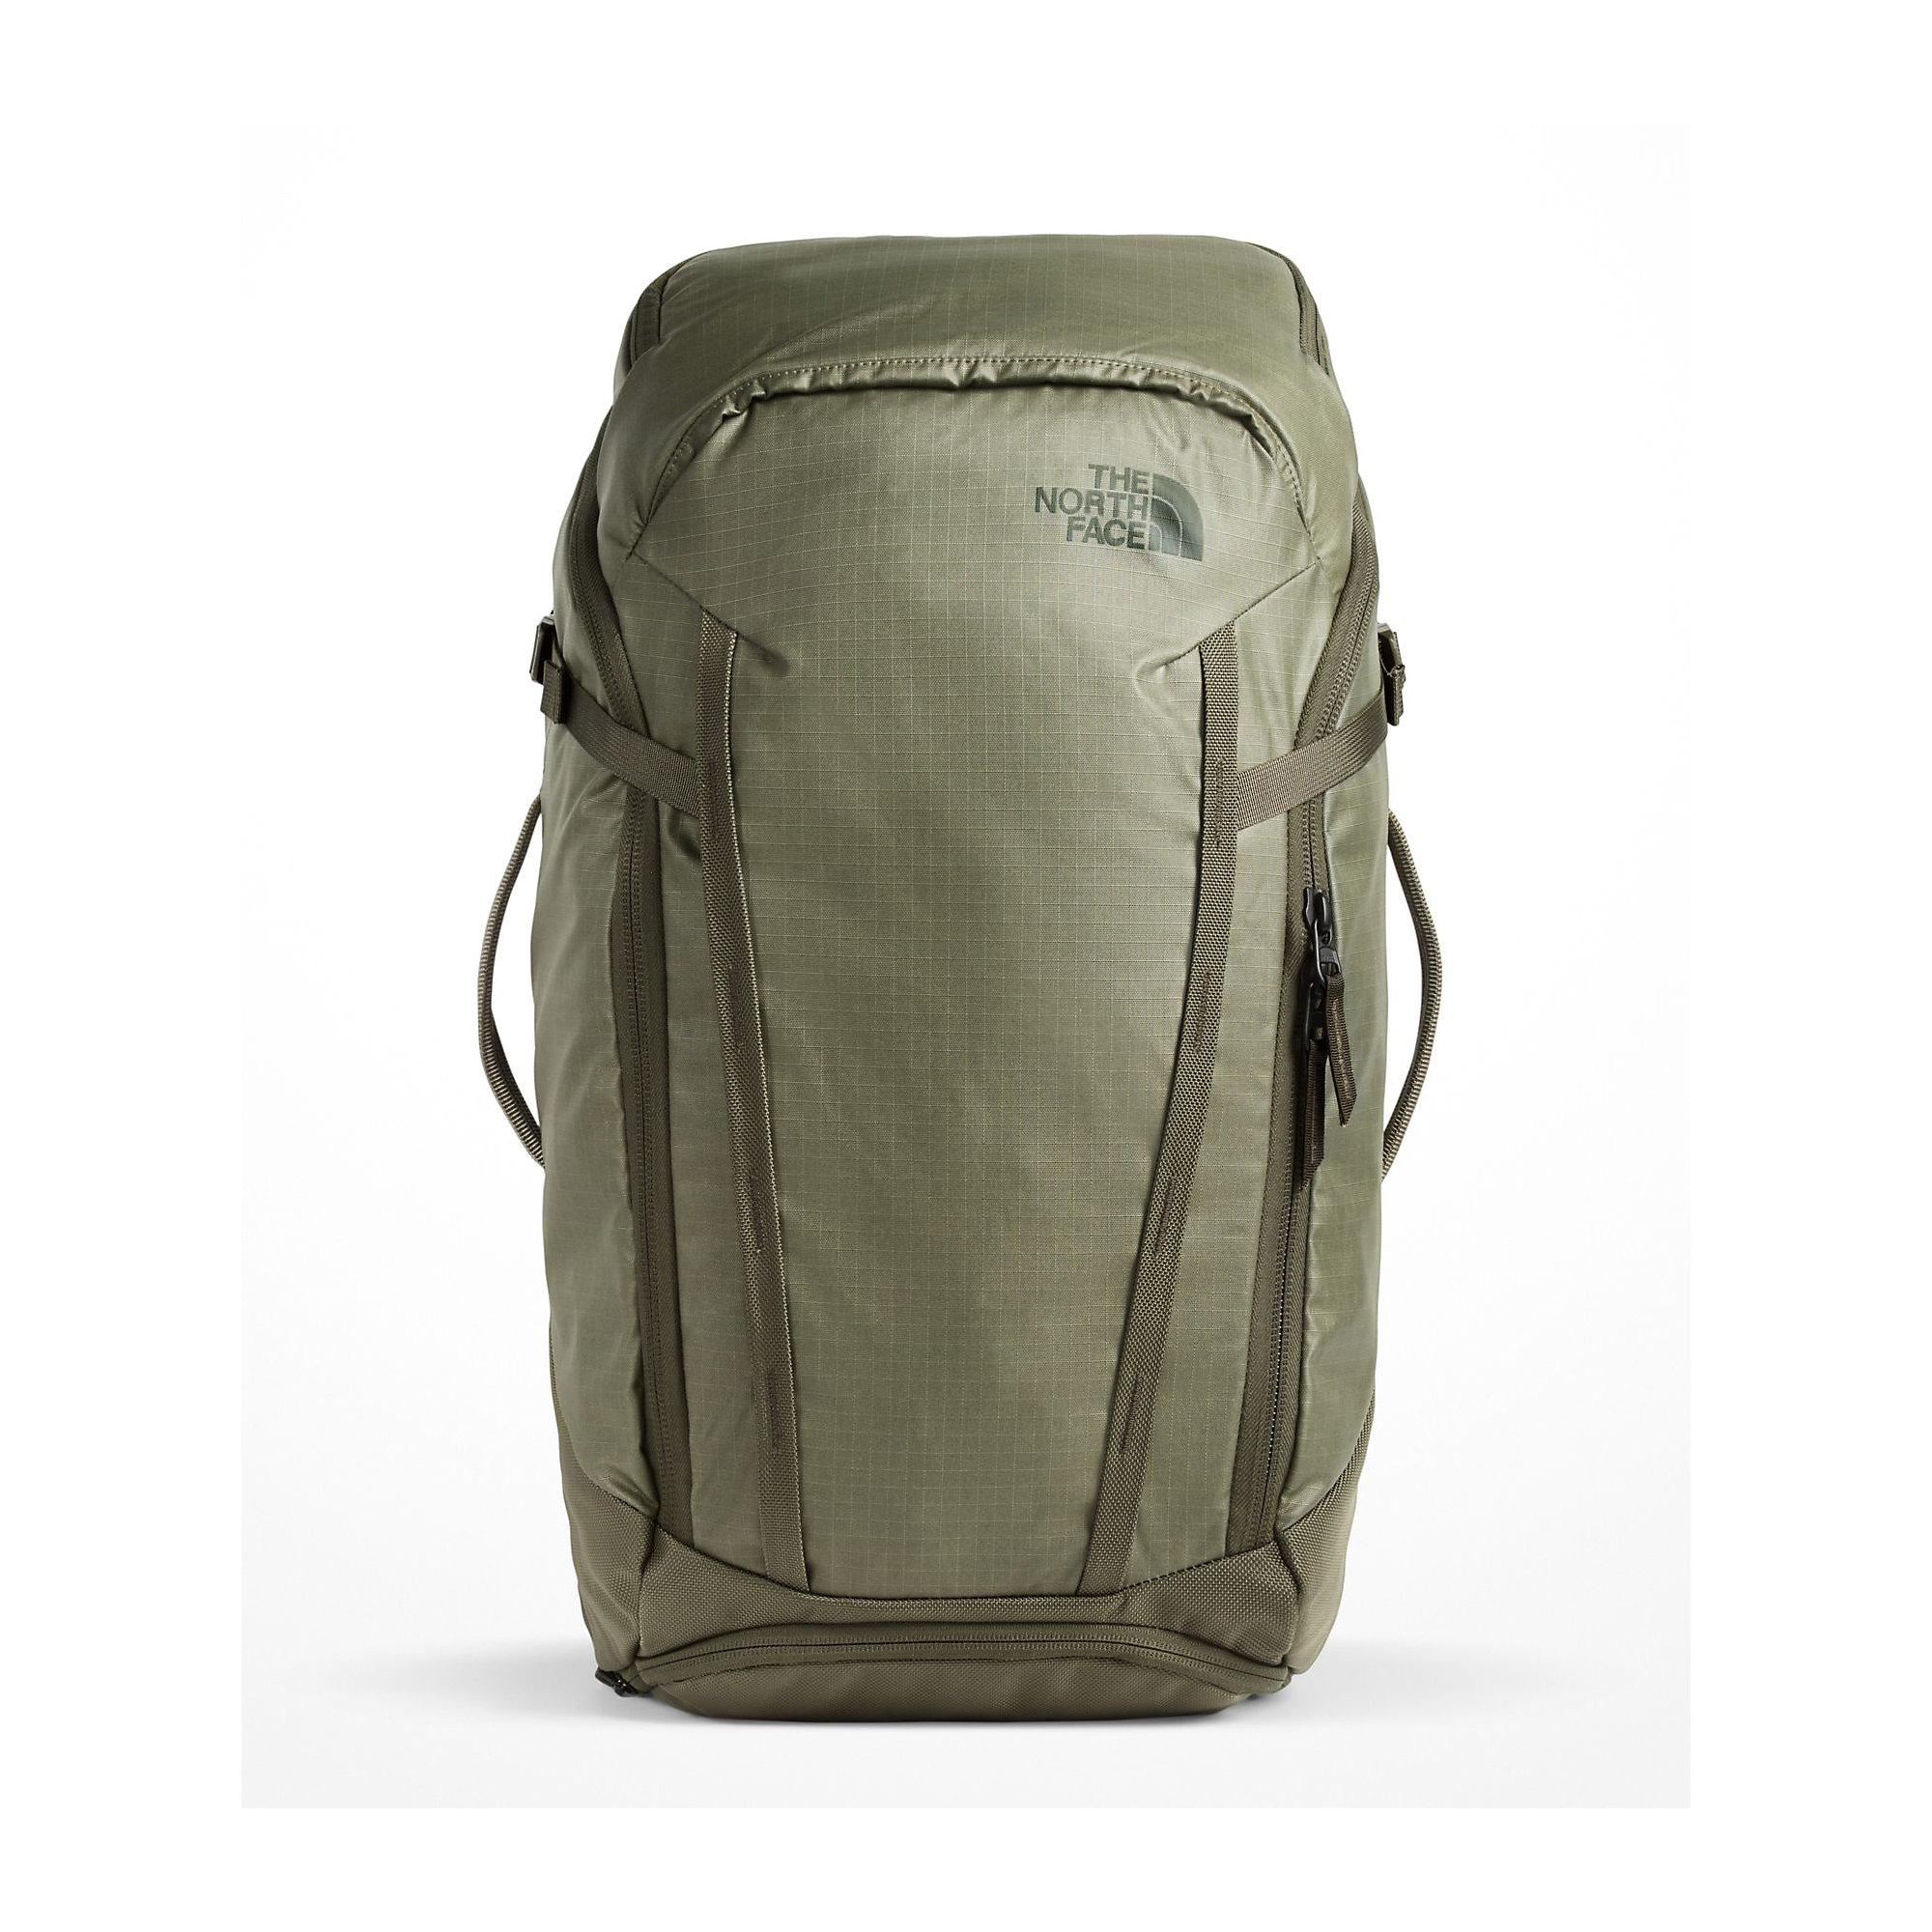 006f9d4a9 The North Face Green Stratoliner Pack